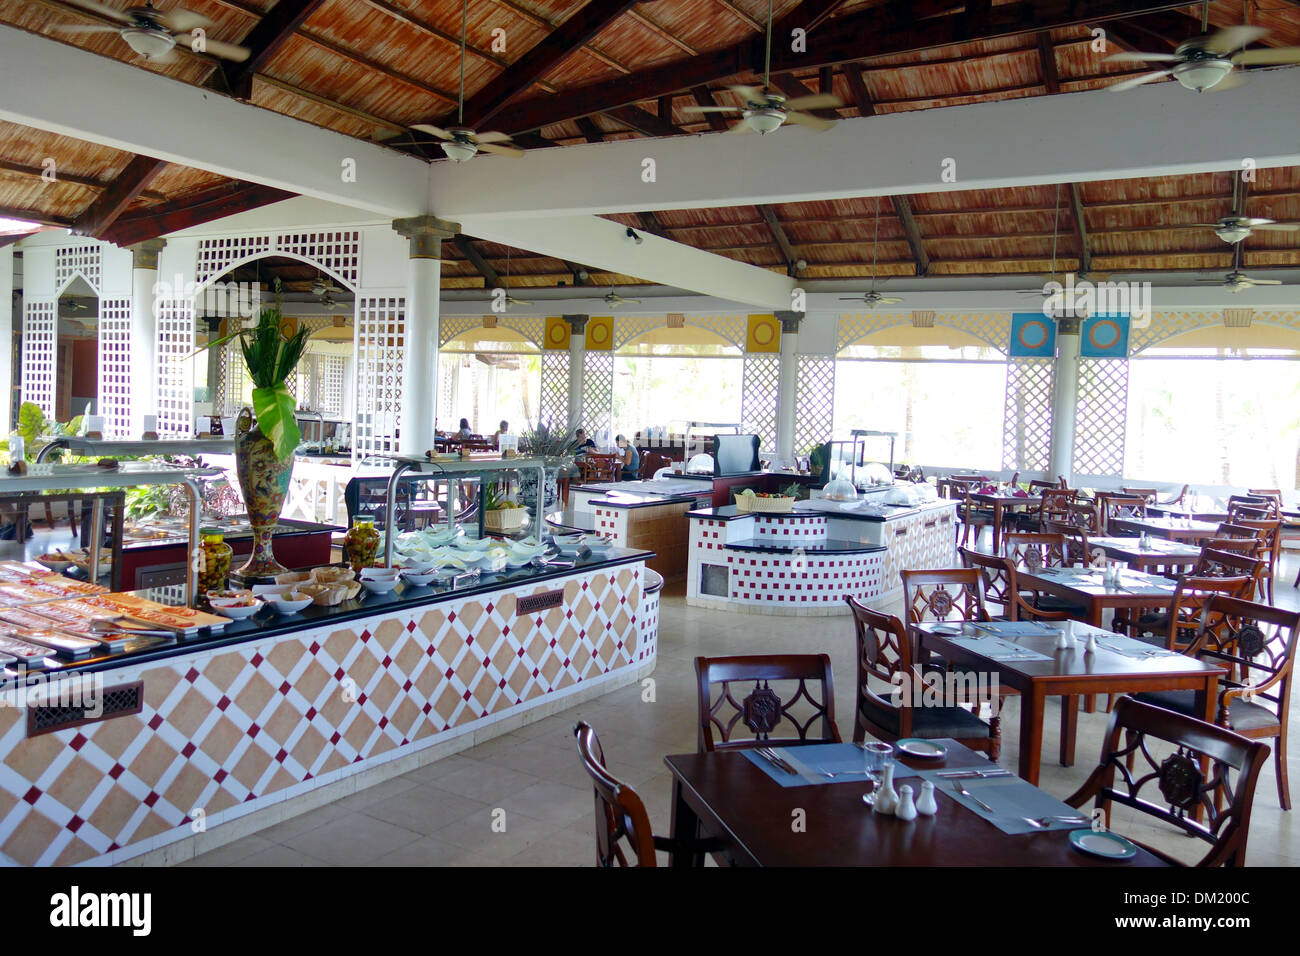 all you can eat buffet restaurant at a resort in varadero cuba rh alamy com all you can eat buffet restaurants near my location all you can eat buffet restaurants in syracuse ny